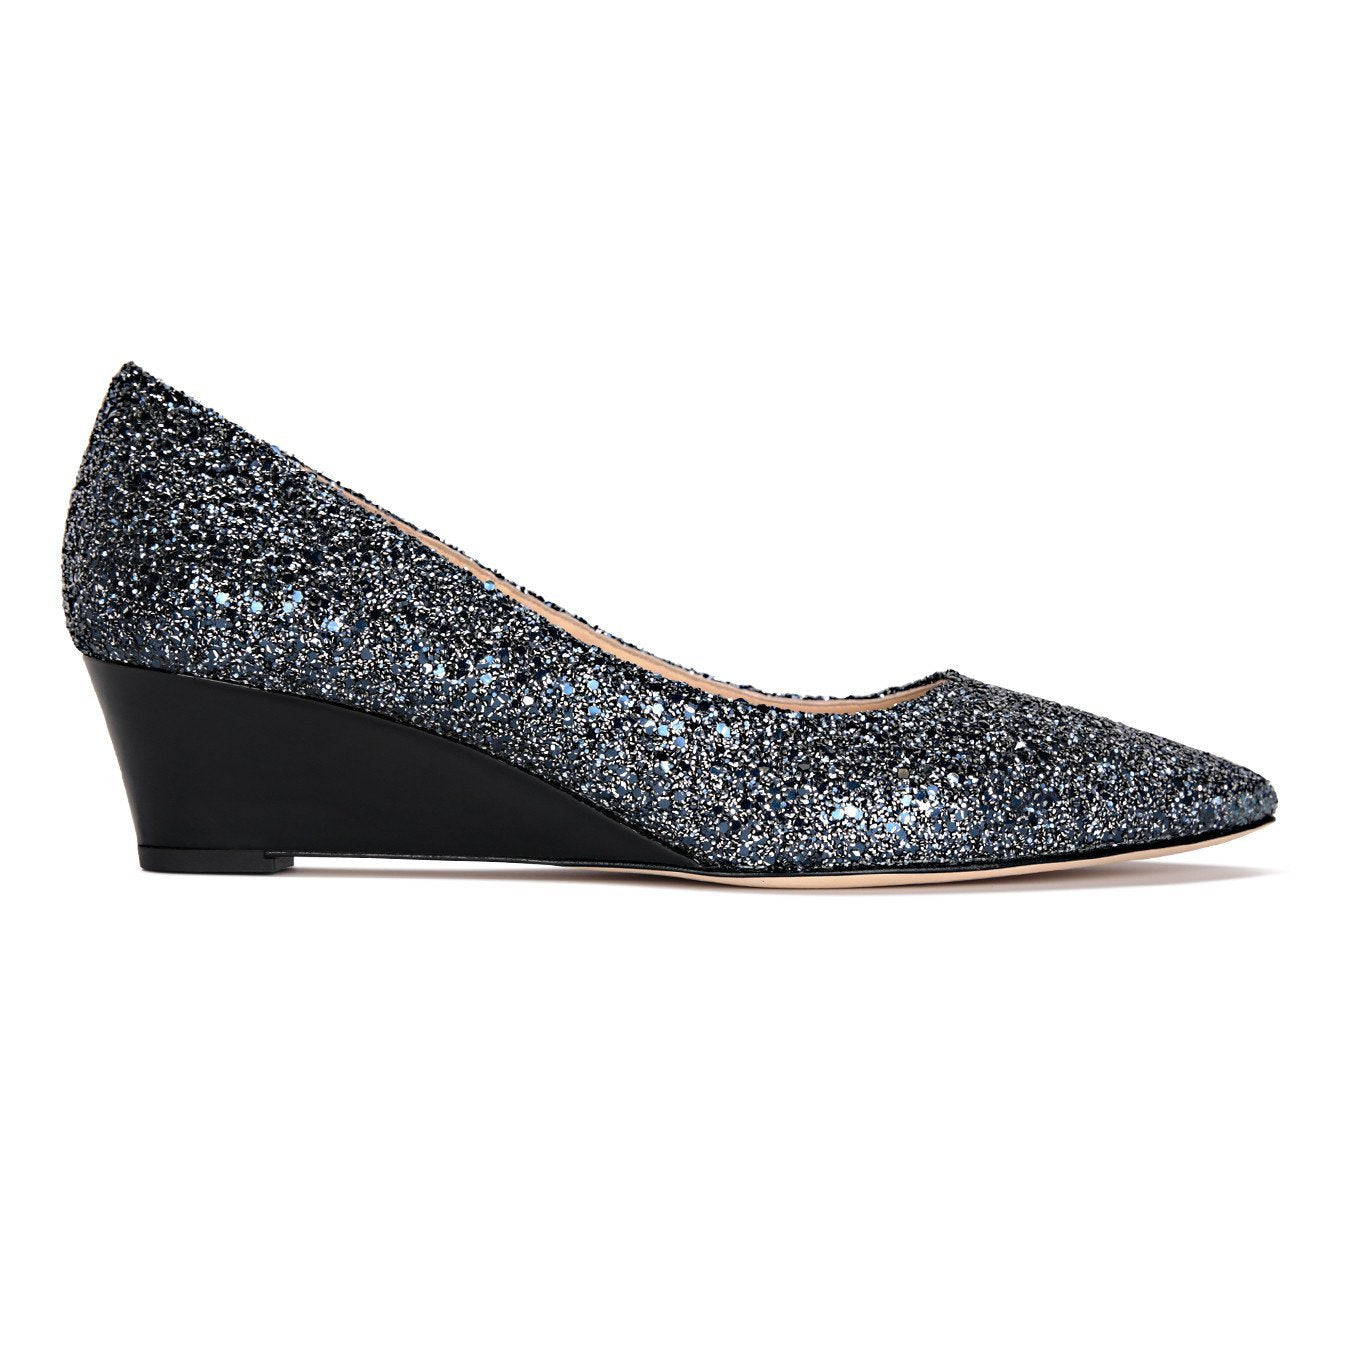 TRENTO - Glitter Midnight + Patent Nero - VIAJIYU Shoes